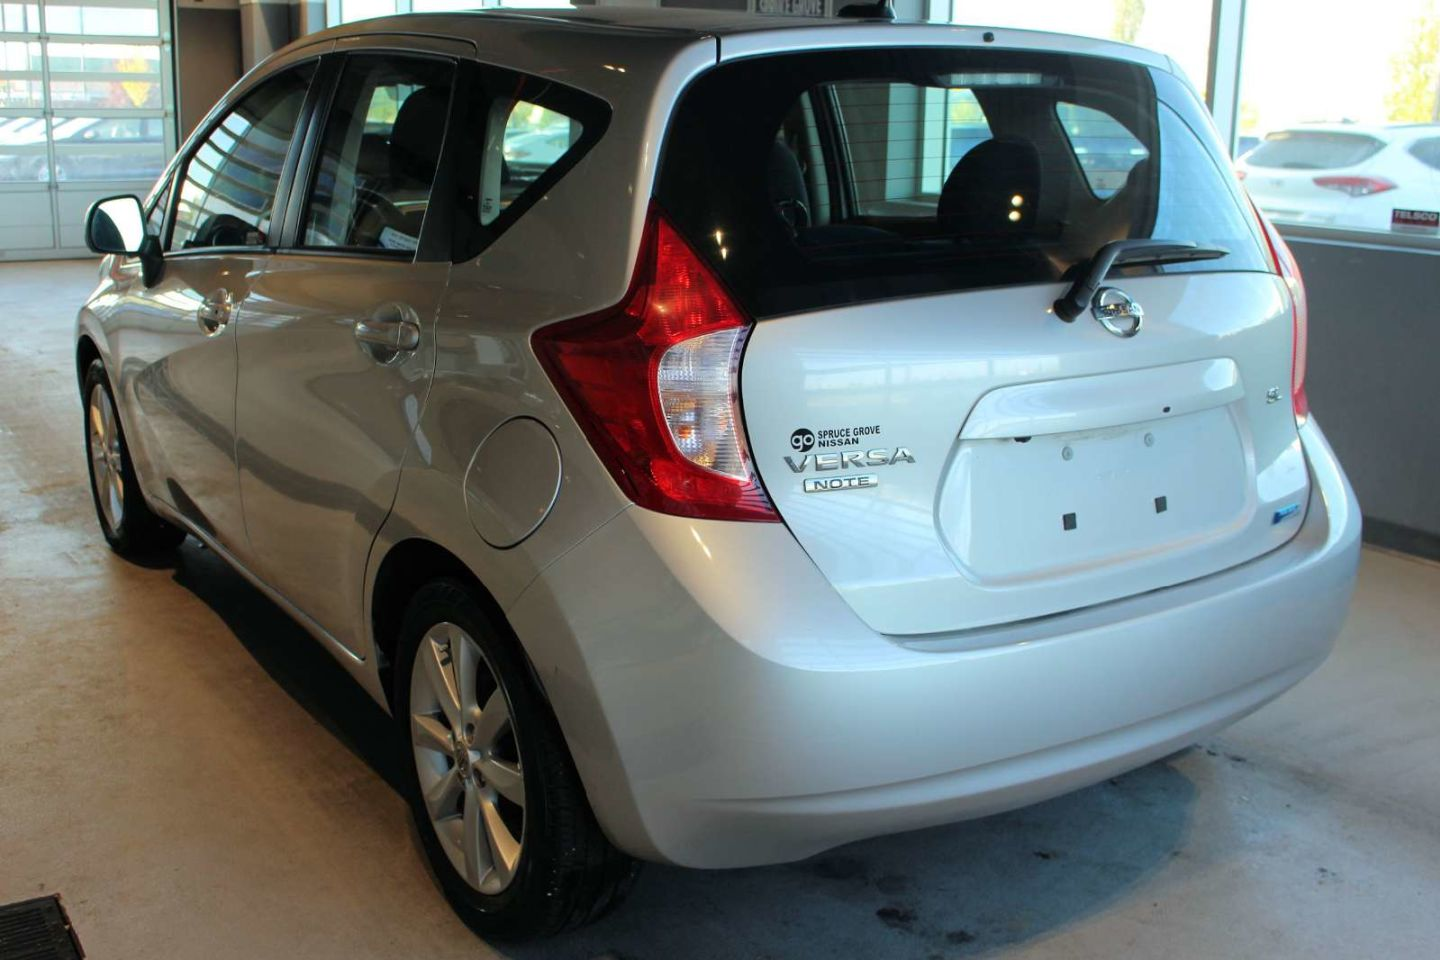 2014 Nissan Versa Note SL for sale in Spruce Grove, Alberta